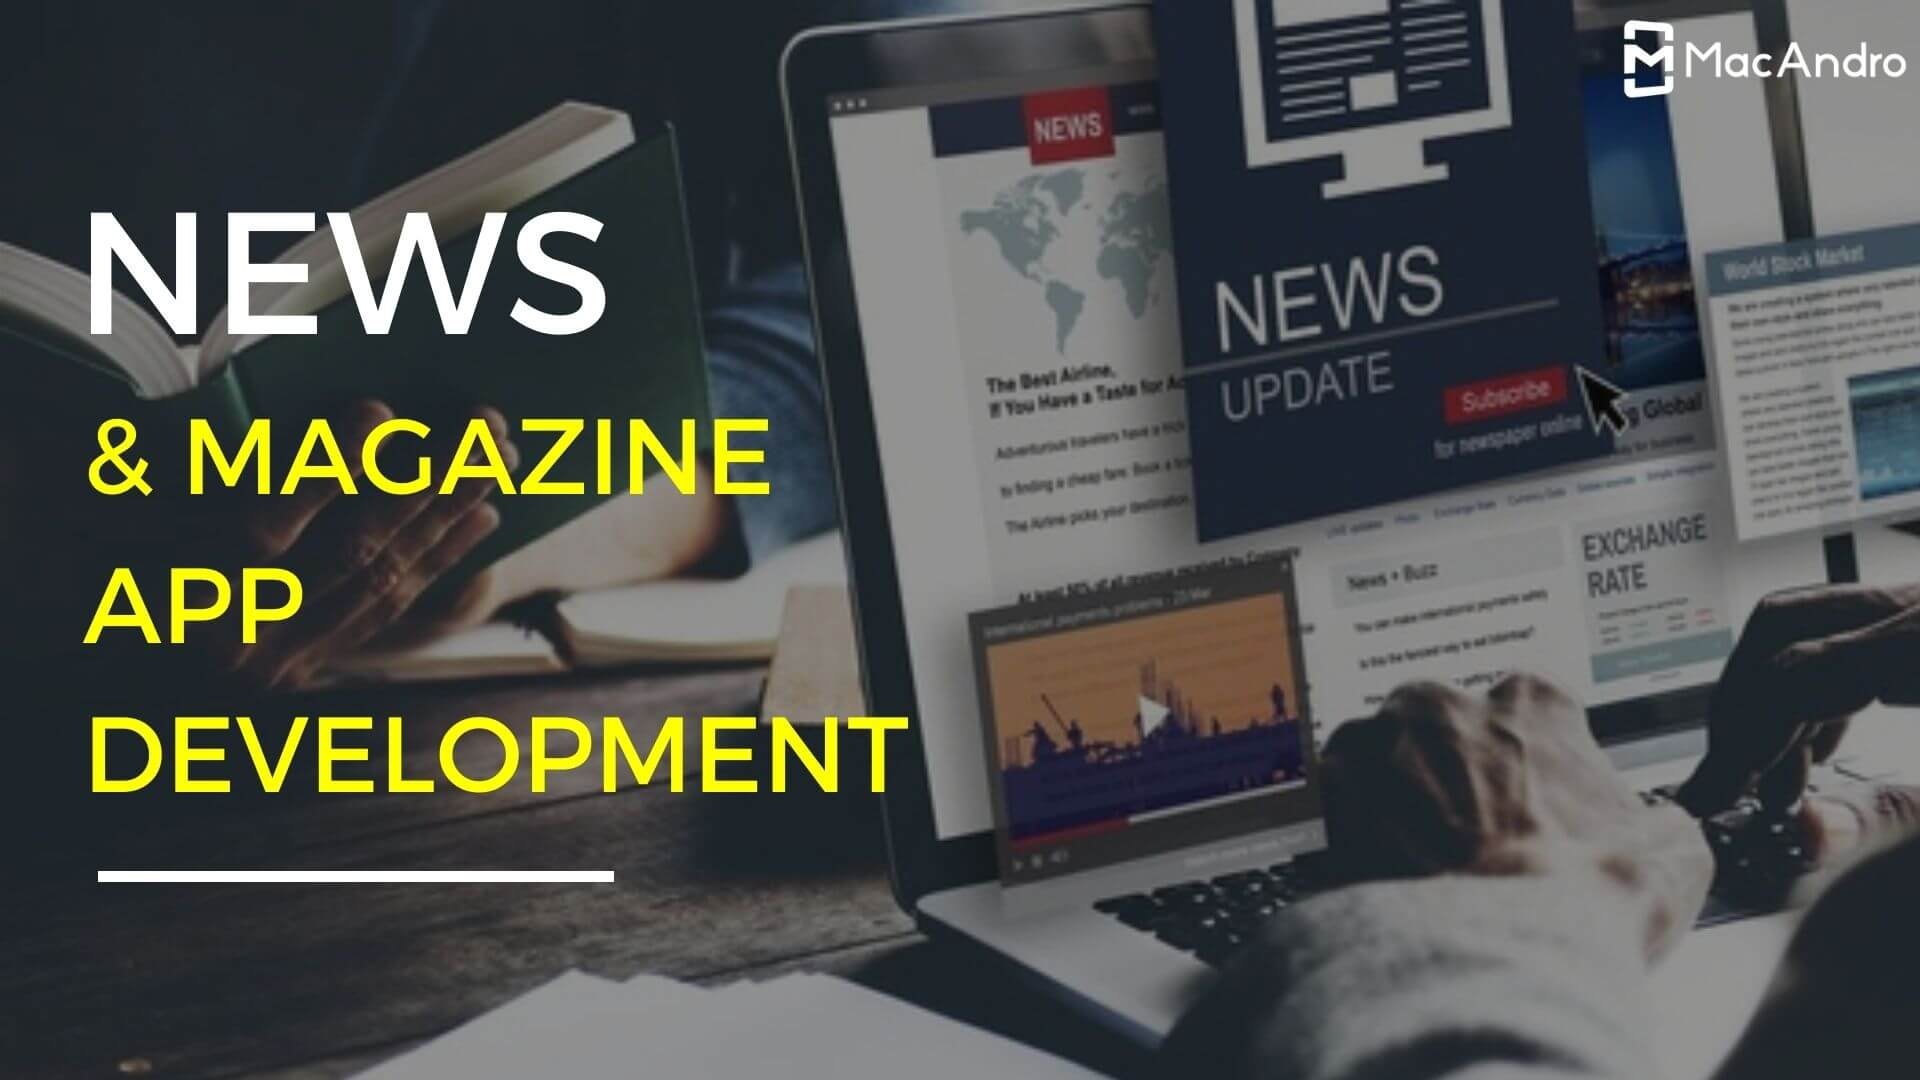 News App Development - Create Apps To Deliver Breaking News At Finger Tips